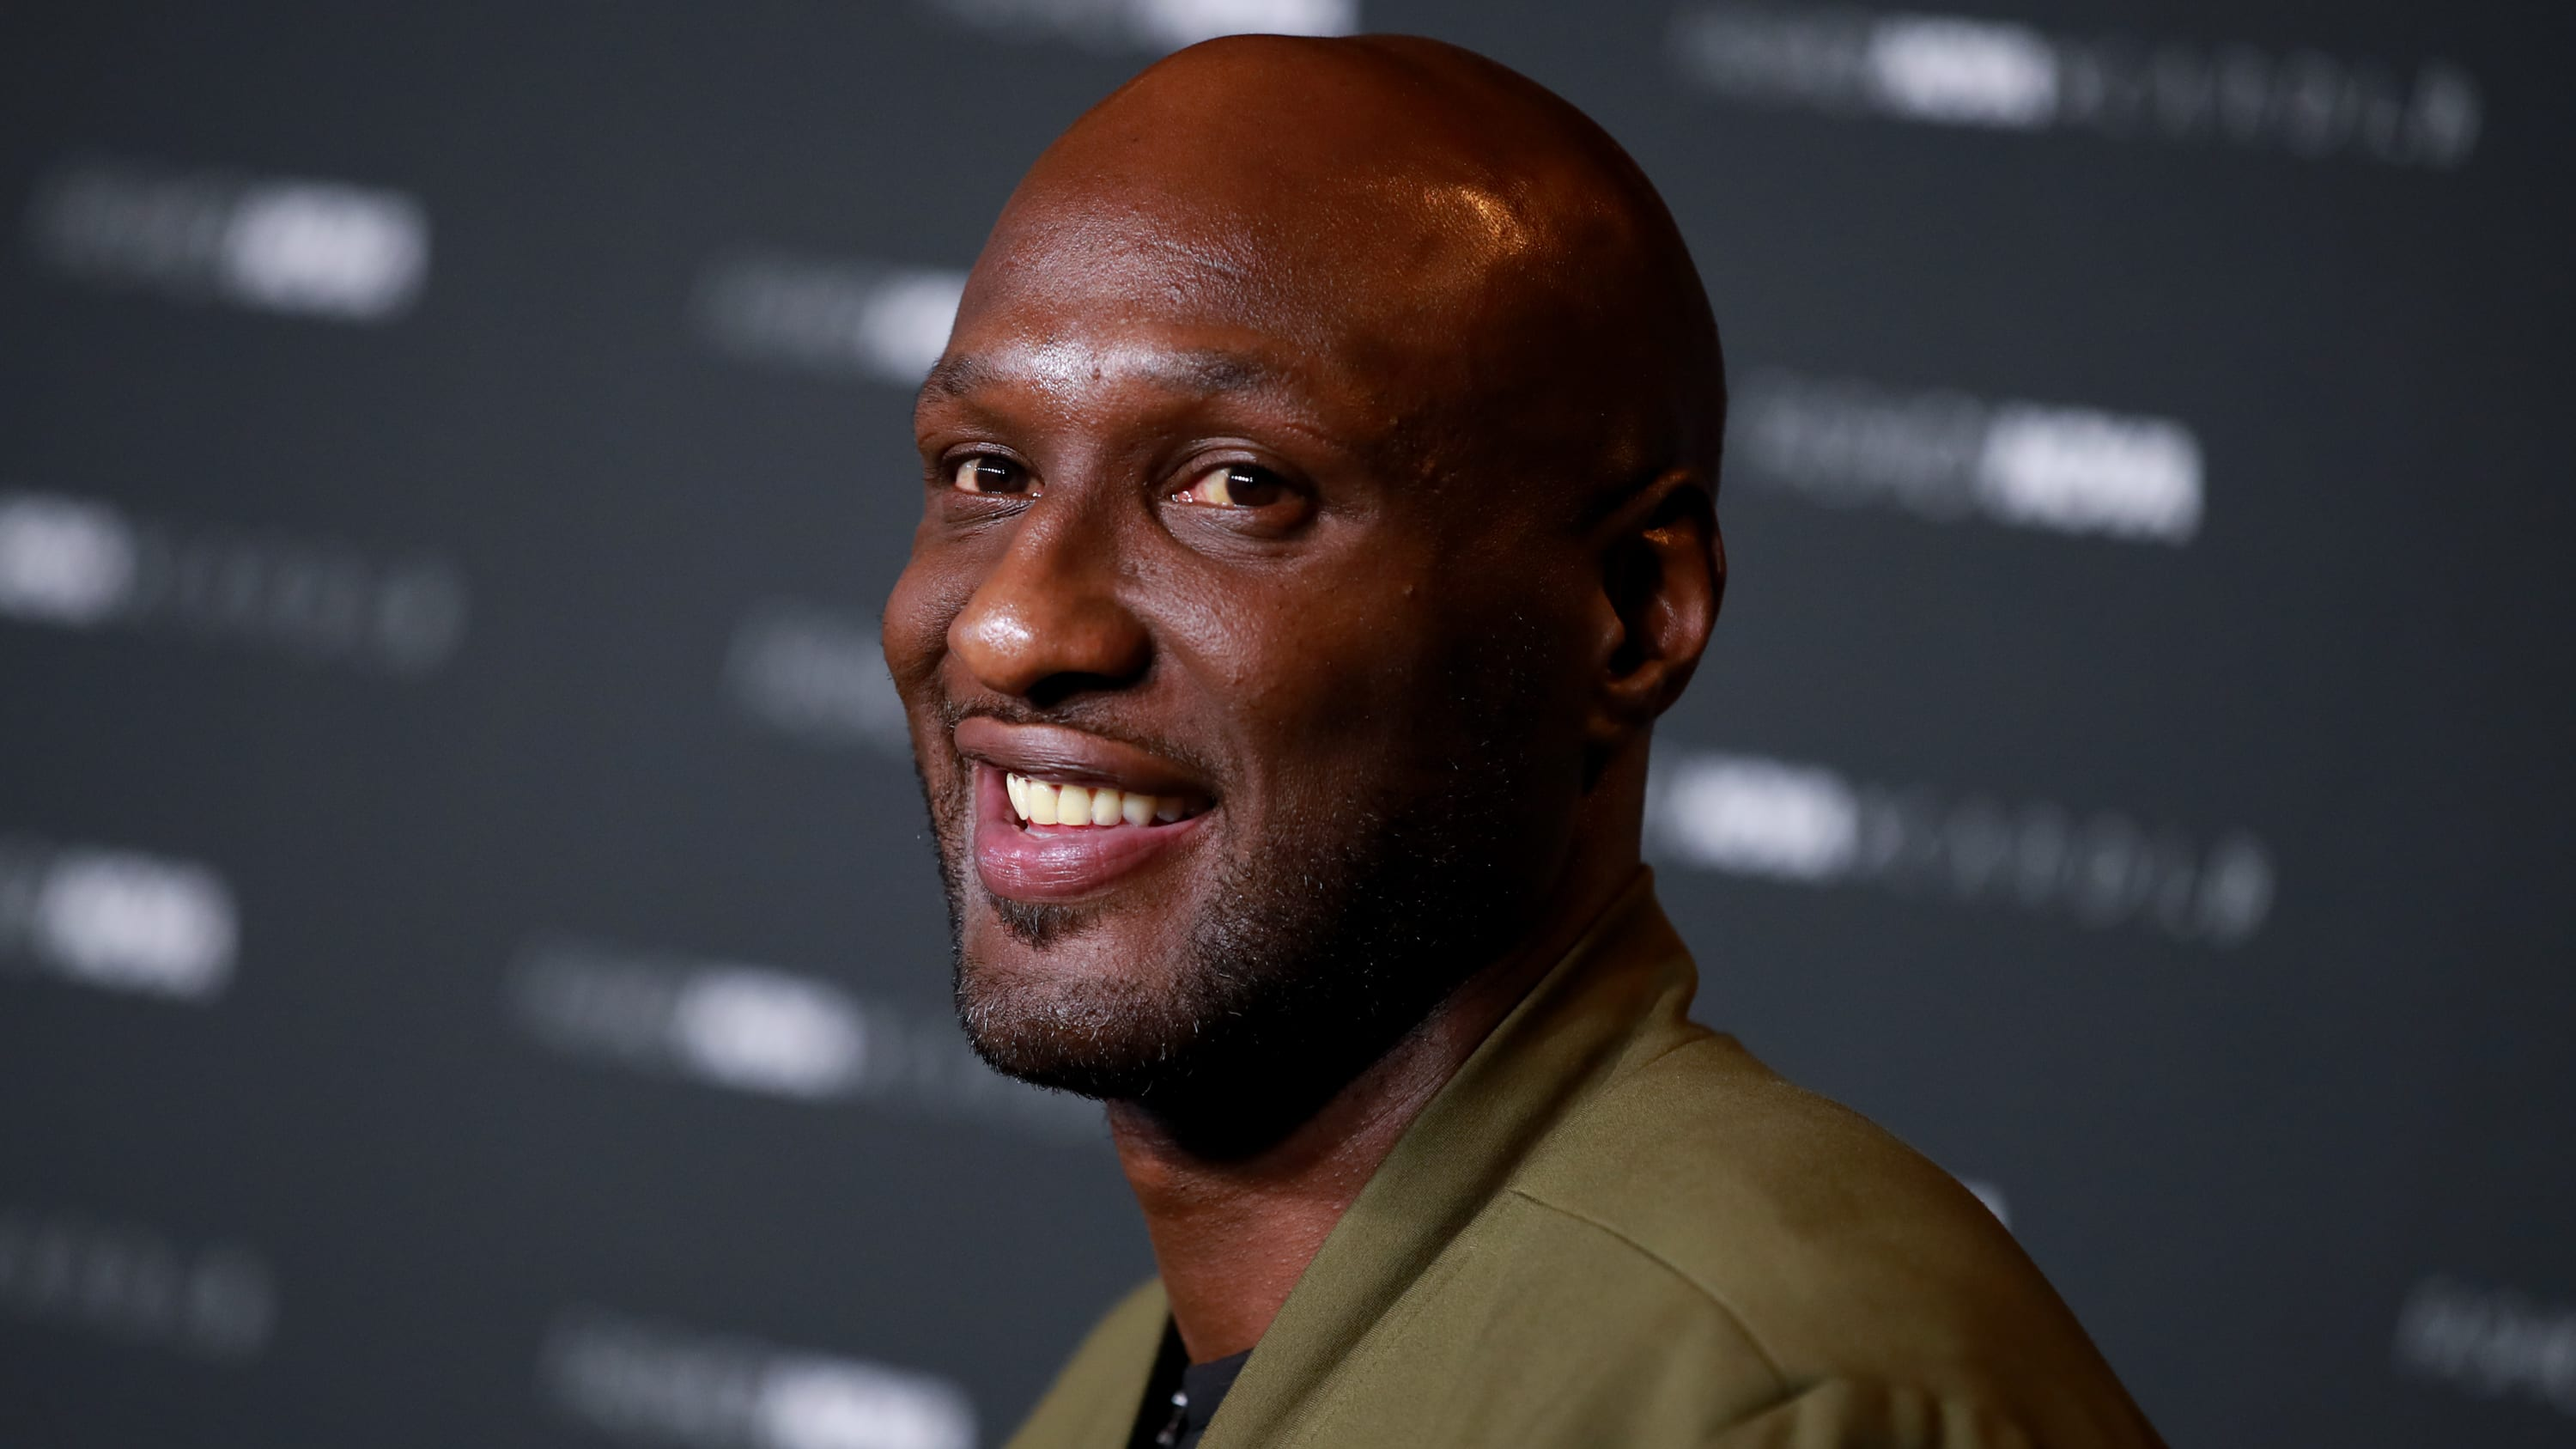 LOS ANGELES, CALIFORNIA - MAY 08: Lamar Odom attends the Fashion Nova x Cardi B Collection Launch Party at Hollywood Palladium on May 08, 2019 in Los Angeles, California. (Photo by Rich Fury/Getty Images)